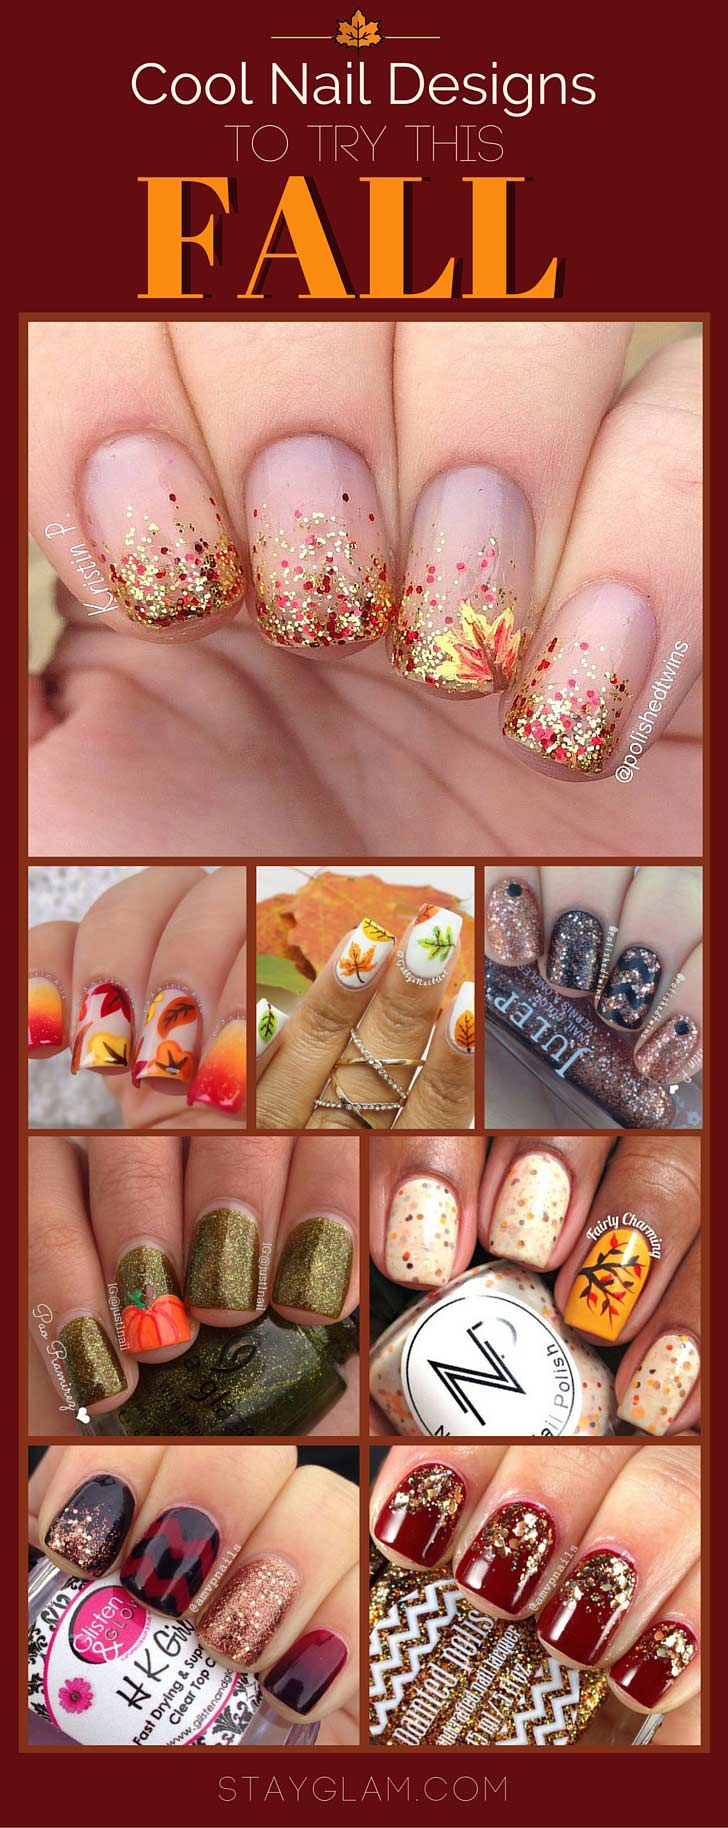 Cool Nail Designs Ideas: 35 Cool Nail Designs To Try This Fall